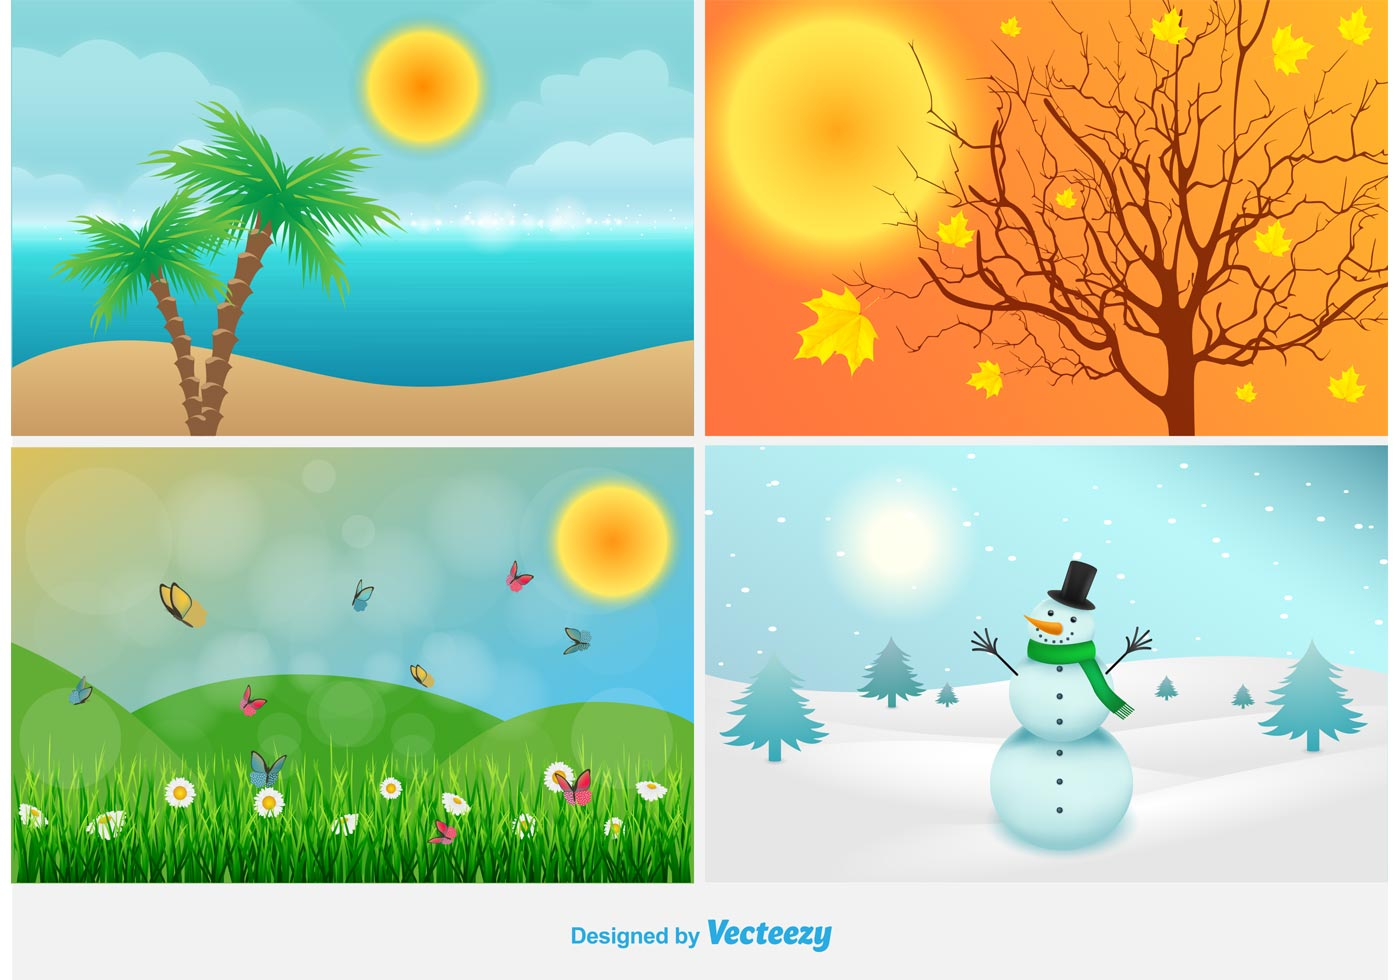 ... Illustrations - Download Free Vector Art, Stock Graphics & Images